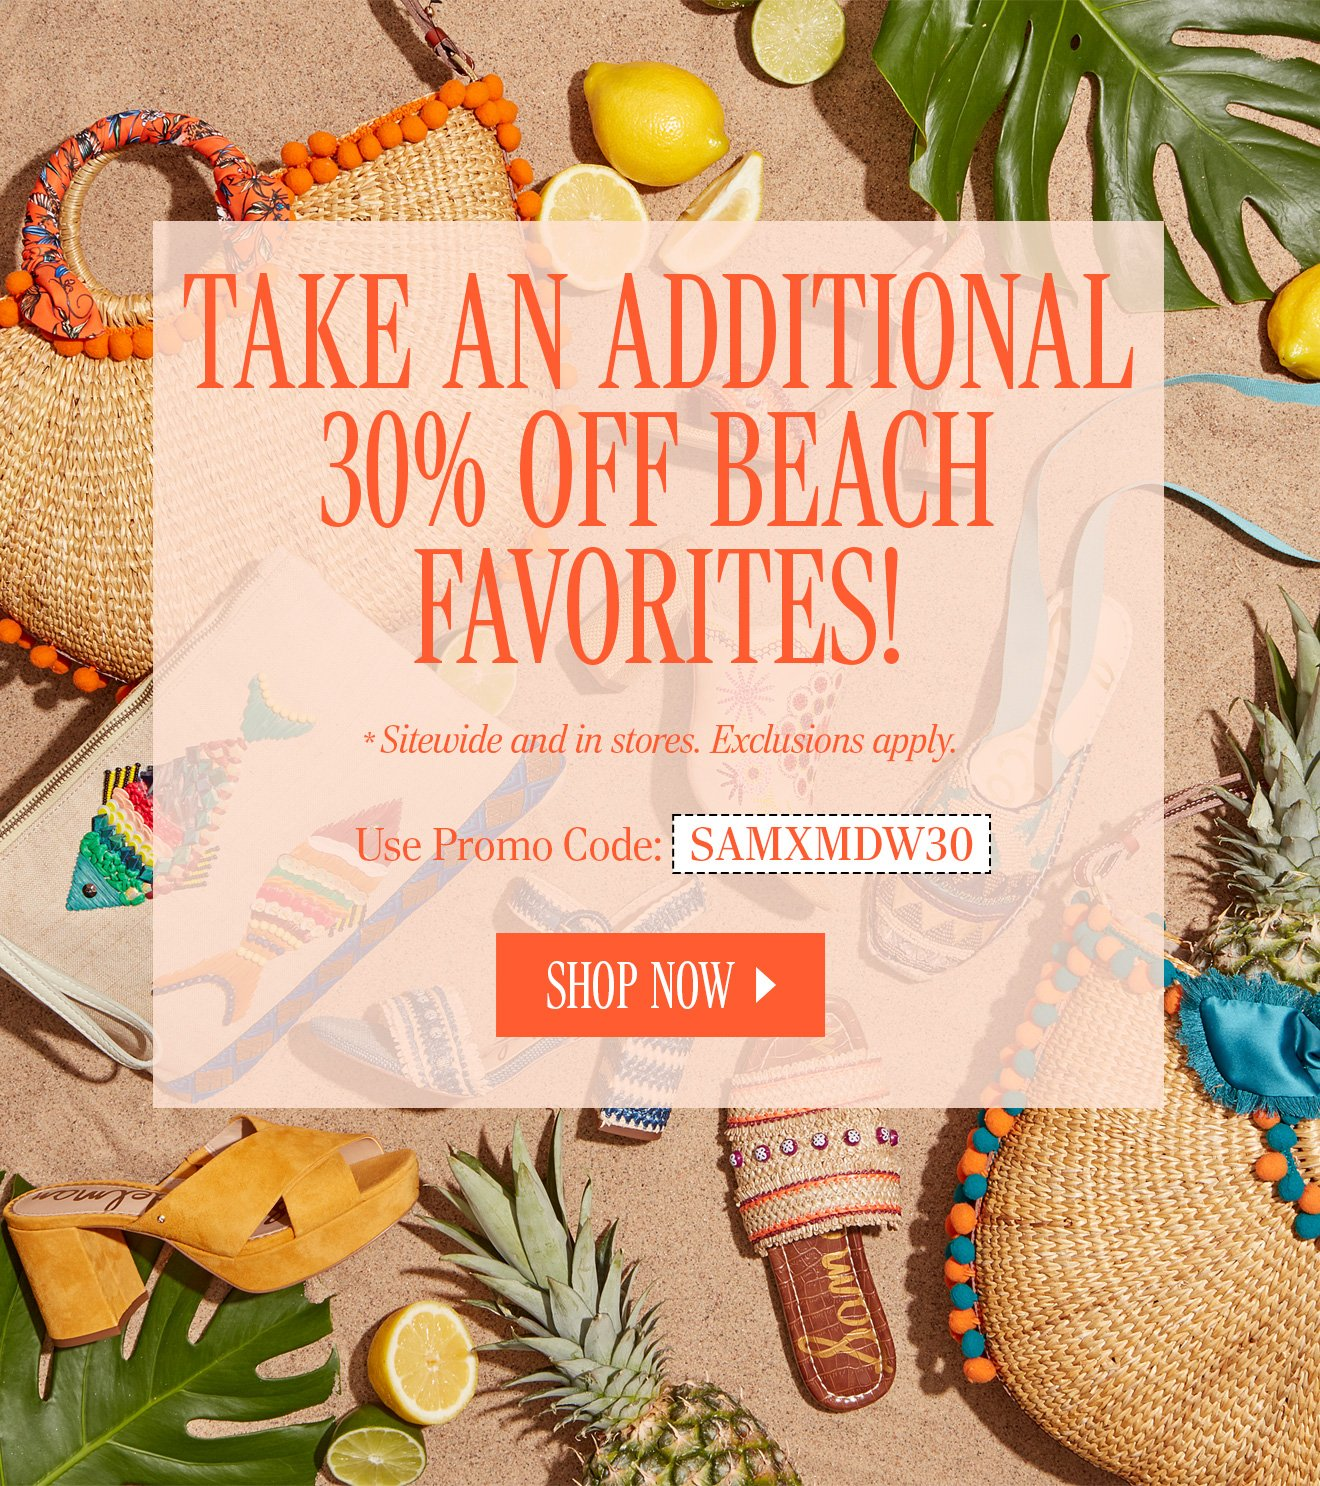 d6e4525c35bf16 TAKE AN ADDITIONAL 30% OFF BEACH FAVORITES!  Sitewide and in stores.  Exclusions